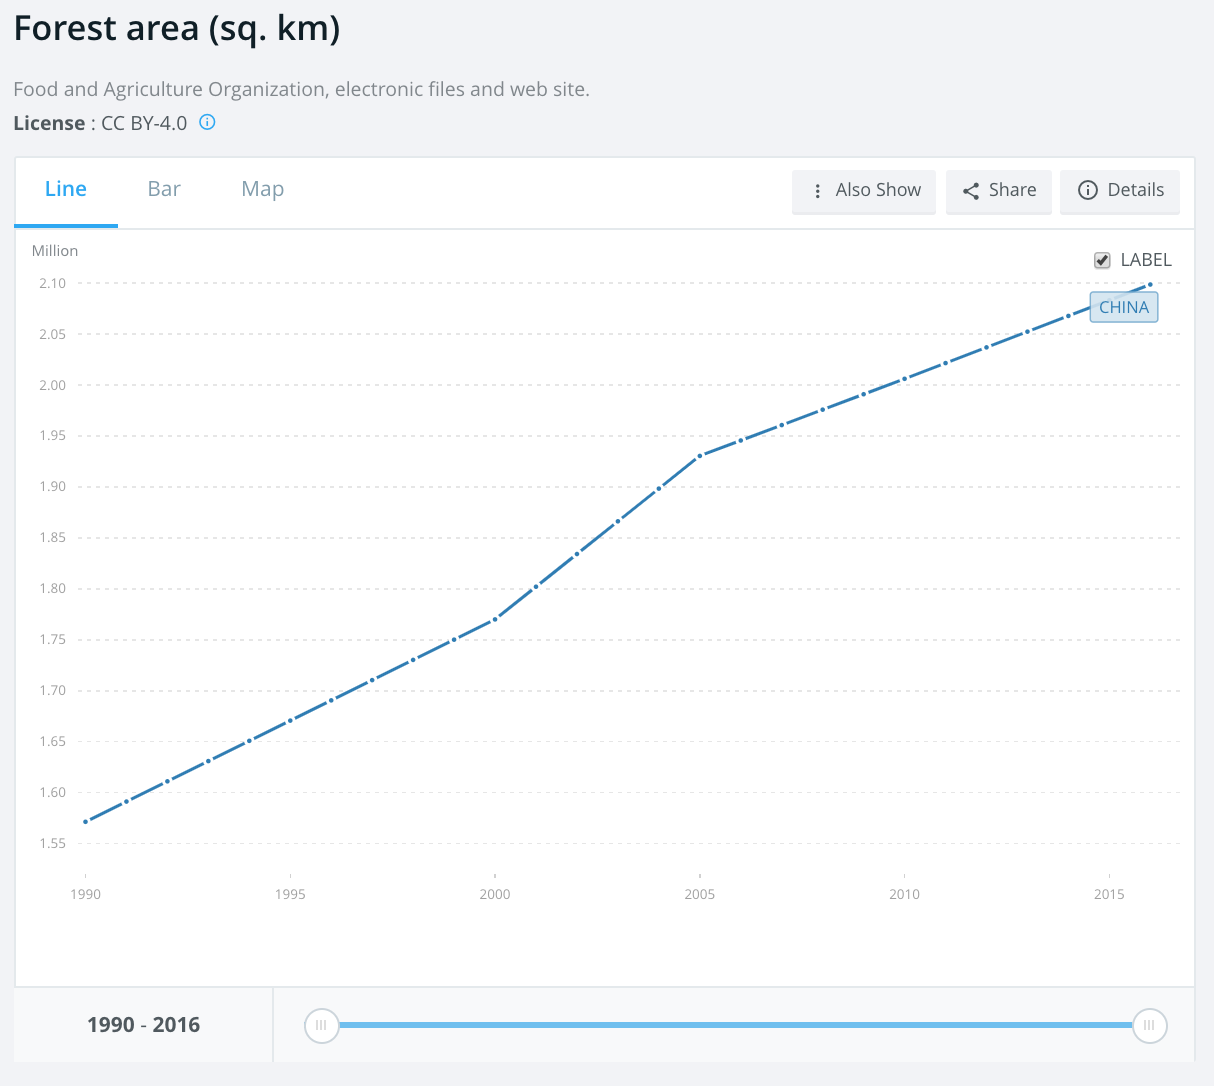 Chart showing growth of forested area from 1.6 to 2.1 million square kilometers since 1990